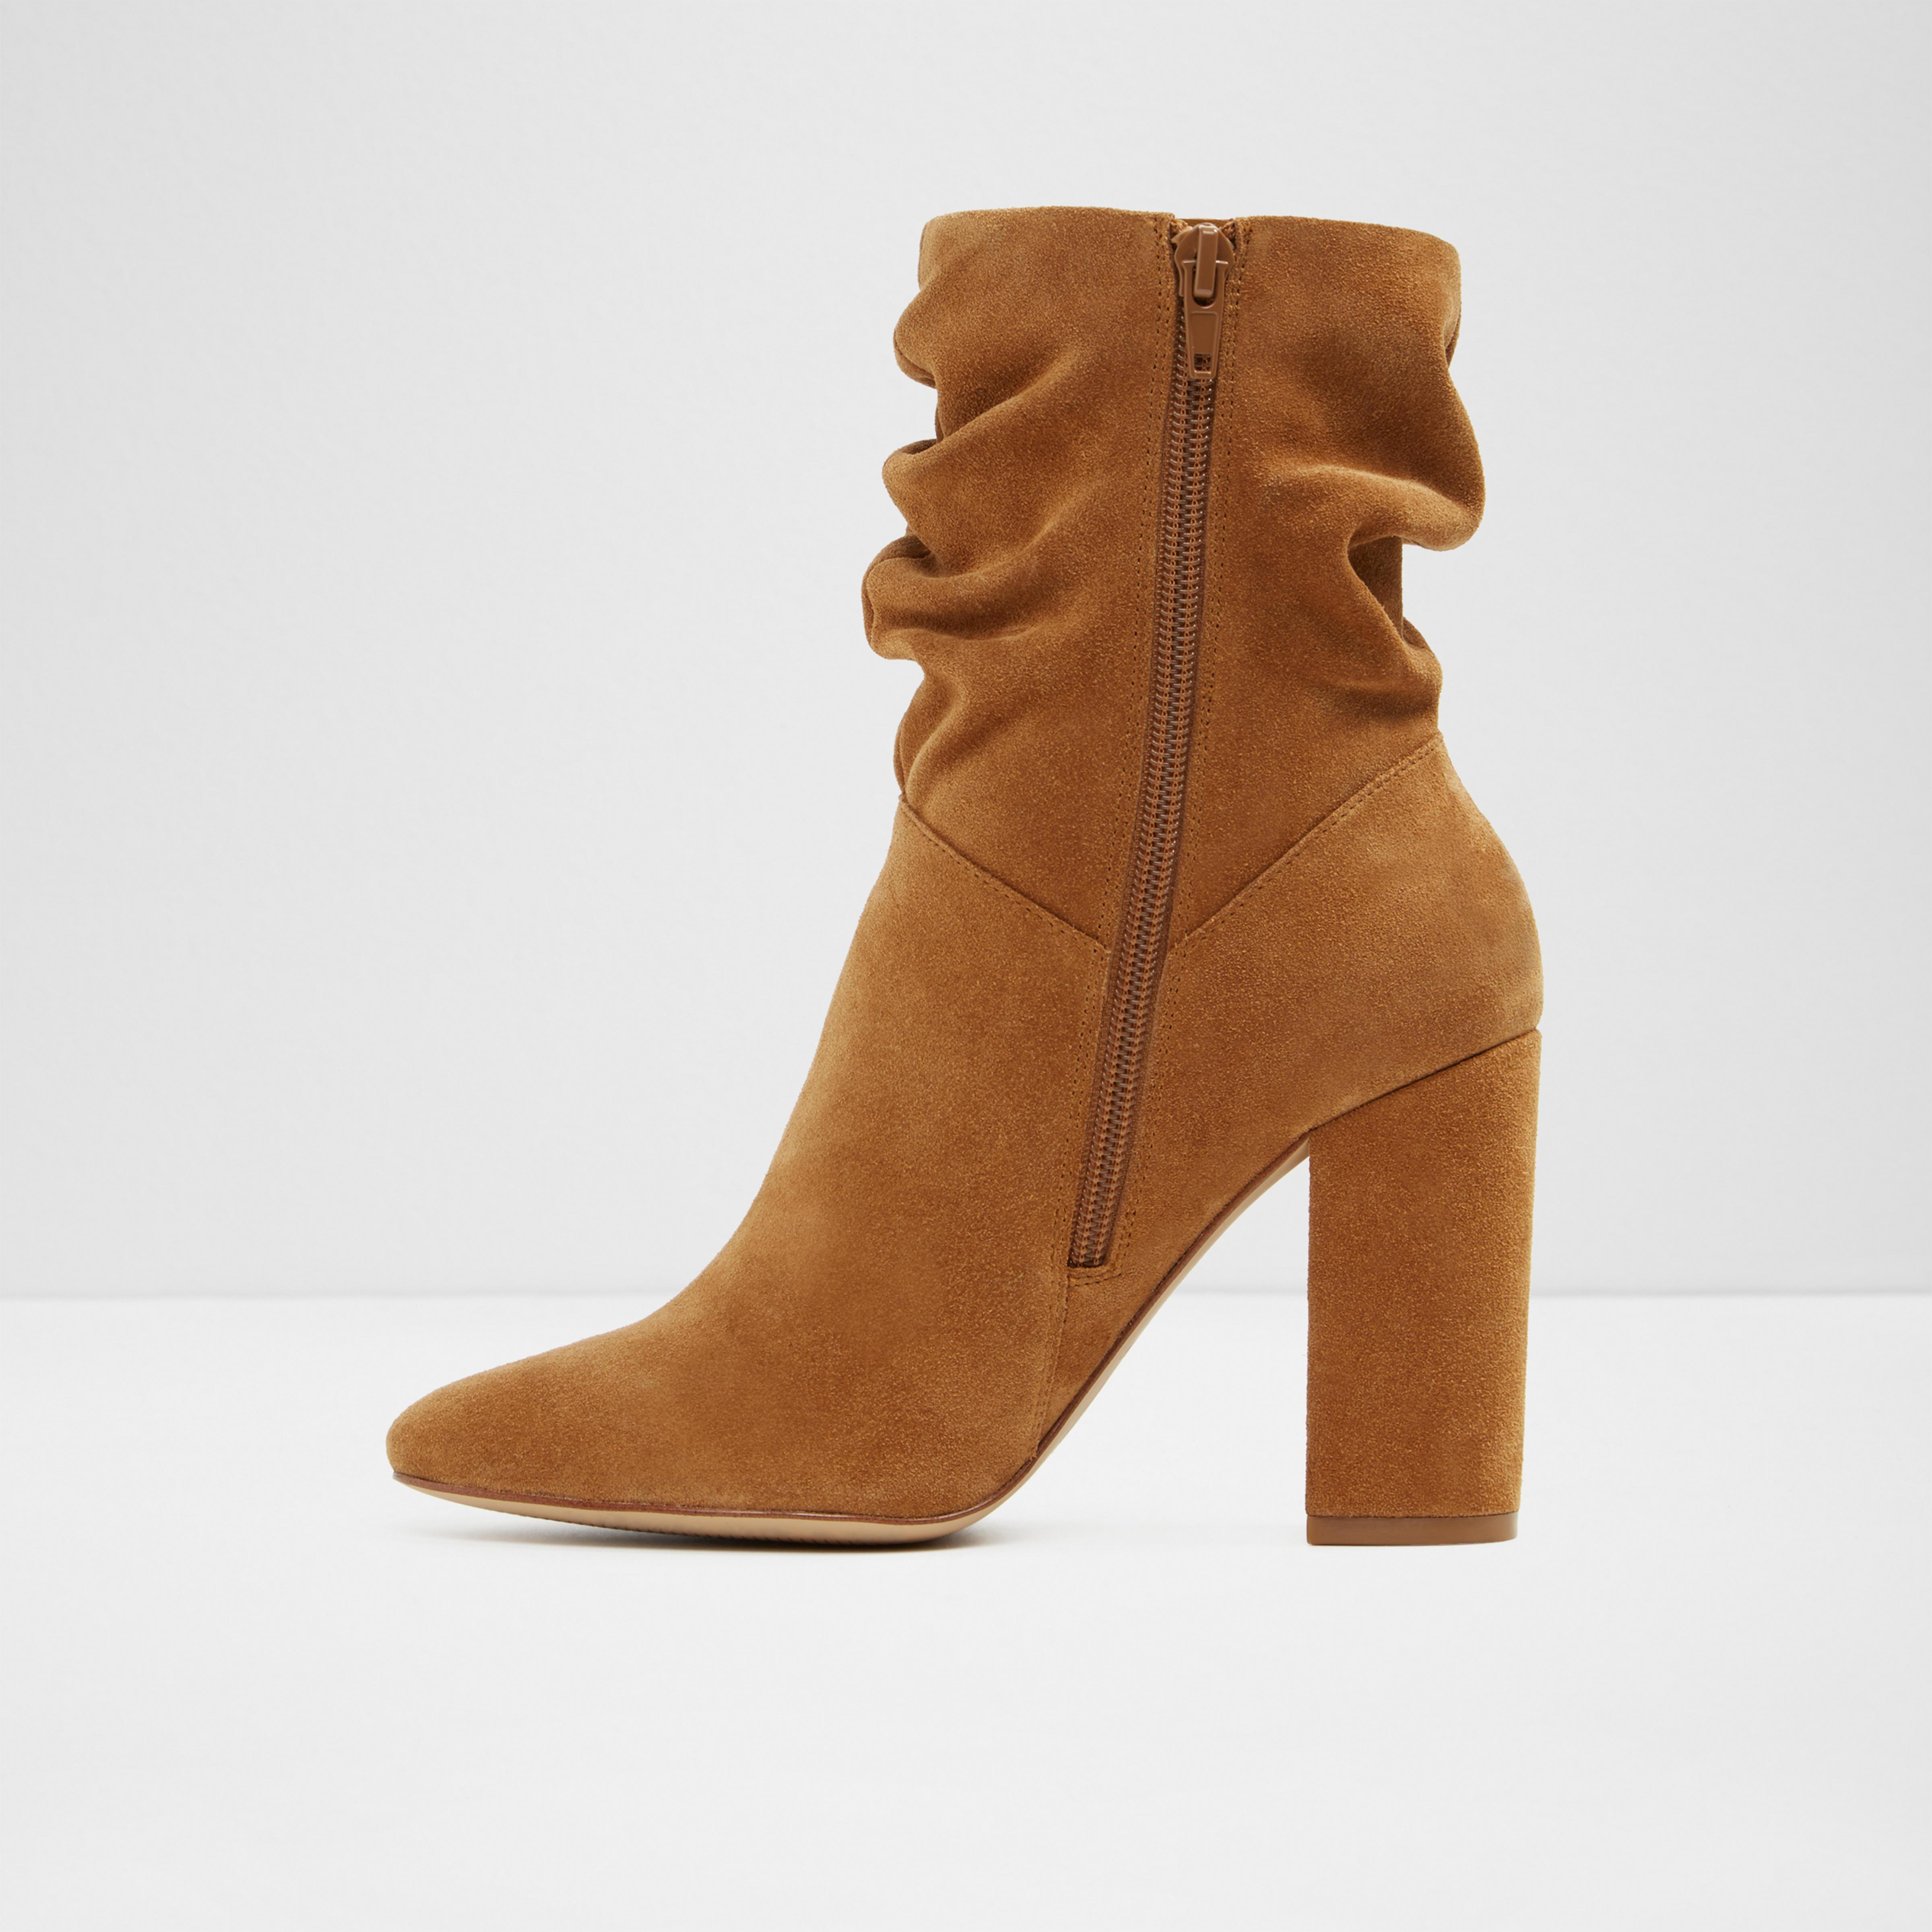 0ee0a391d8f Lyst - ALDO Wicessa in Brown